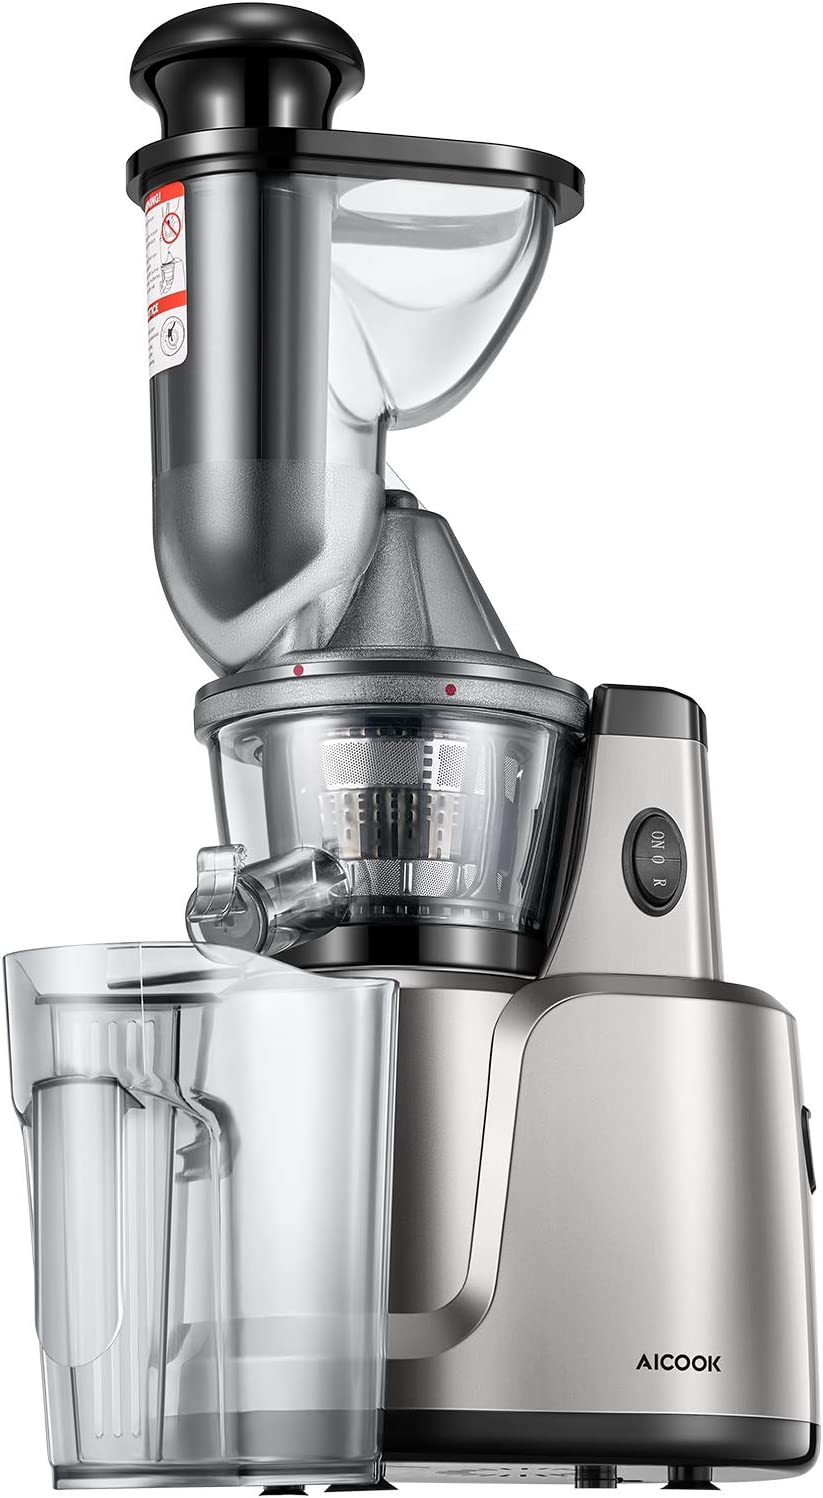 Juicer Machines, Aicook Slow Masticating Juice Extractor Easy to Clean, 3 Filters for Fruits, Vegs, Baby Food, and Smoothies, Quiet Motor, Pre-cleaning, and Reverse Function, Non-Slip Feet 61gOlytrnuLSL1500_